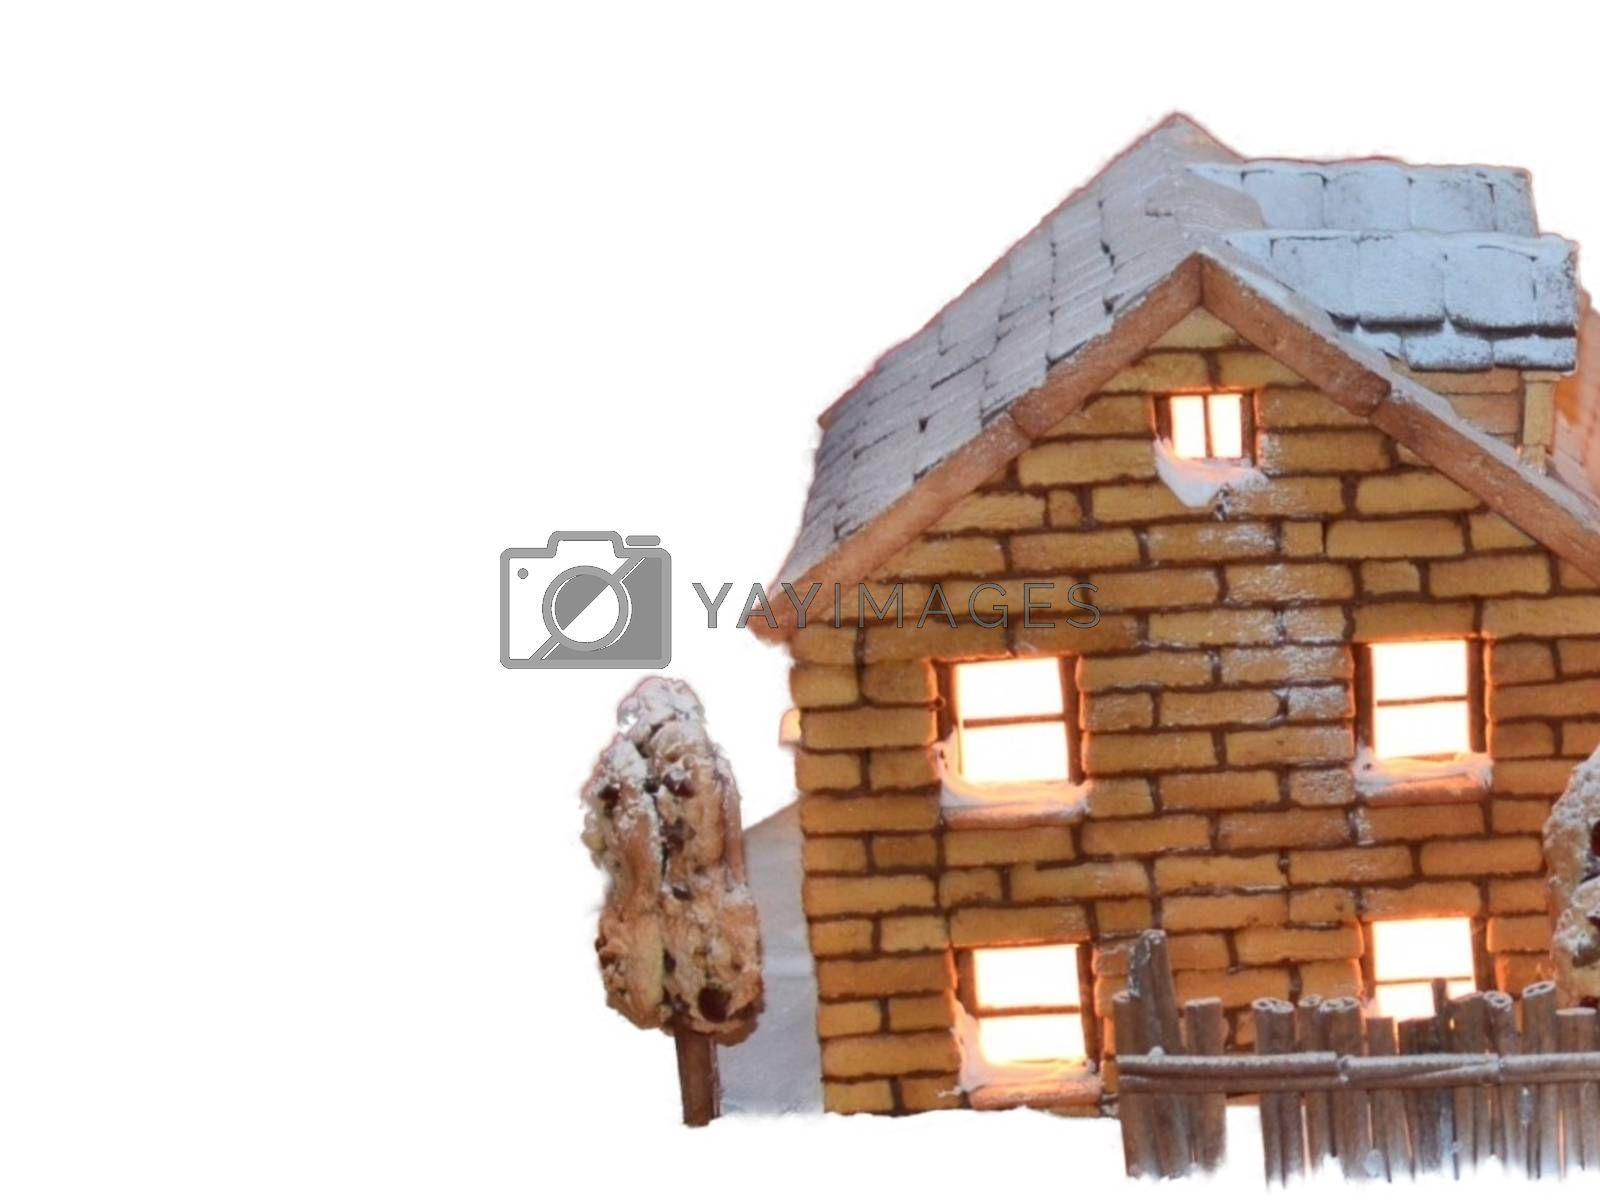 Royalty free image of Nearby illustration from a small brick house with a Christmas atmosphere with a fence by balage941